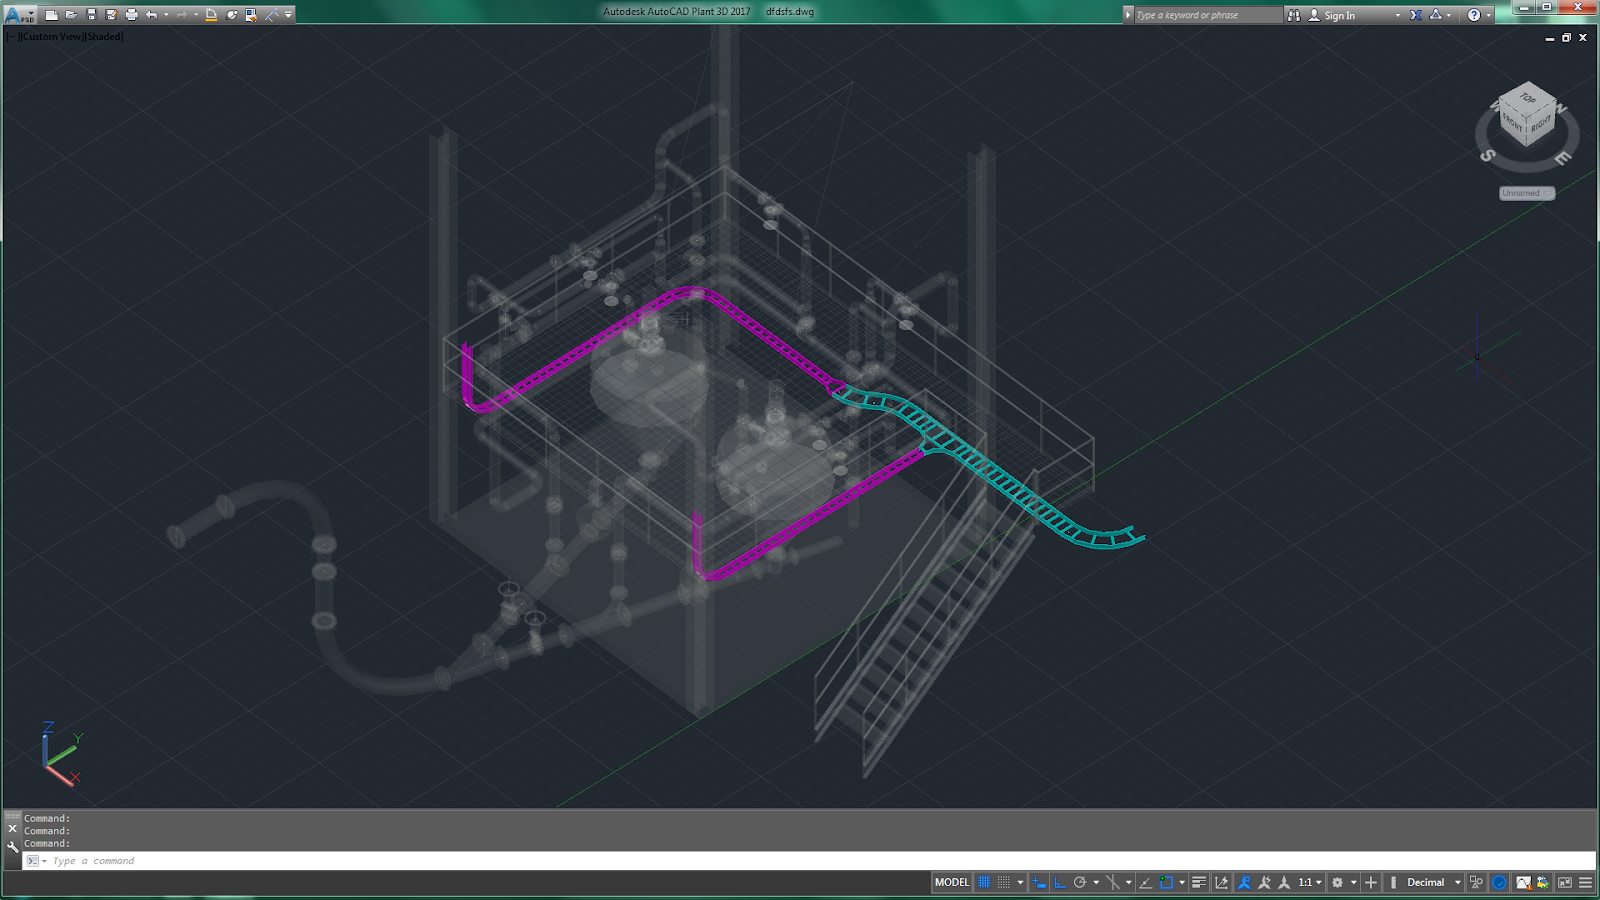 AutoCAD Add-ons: Python Cable Tray for Plant 3D